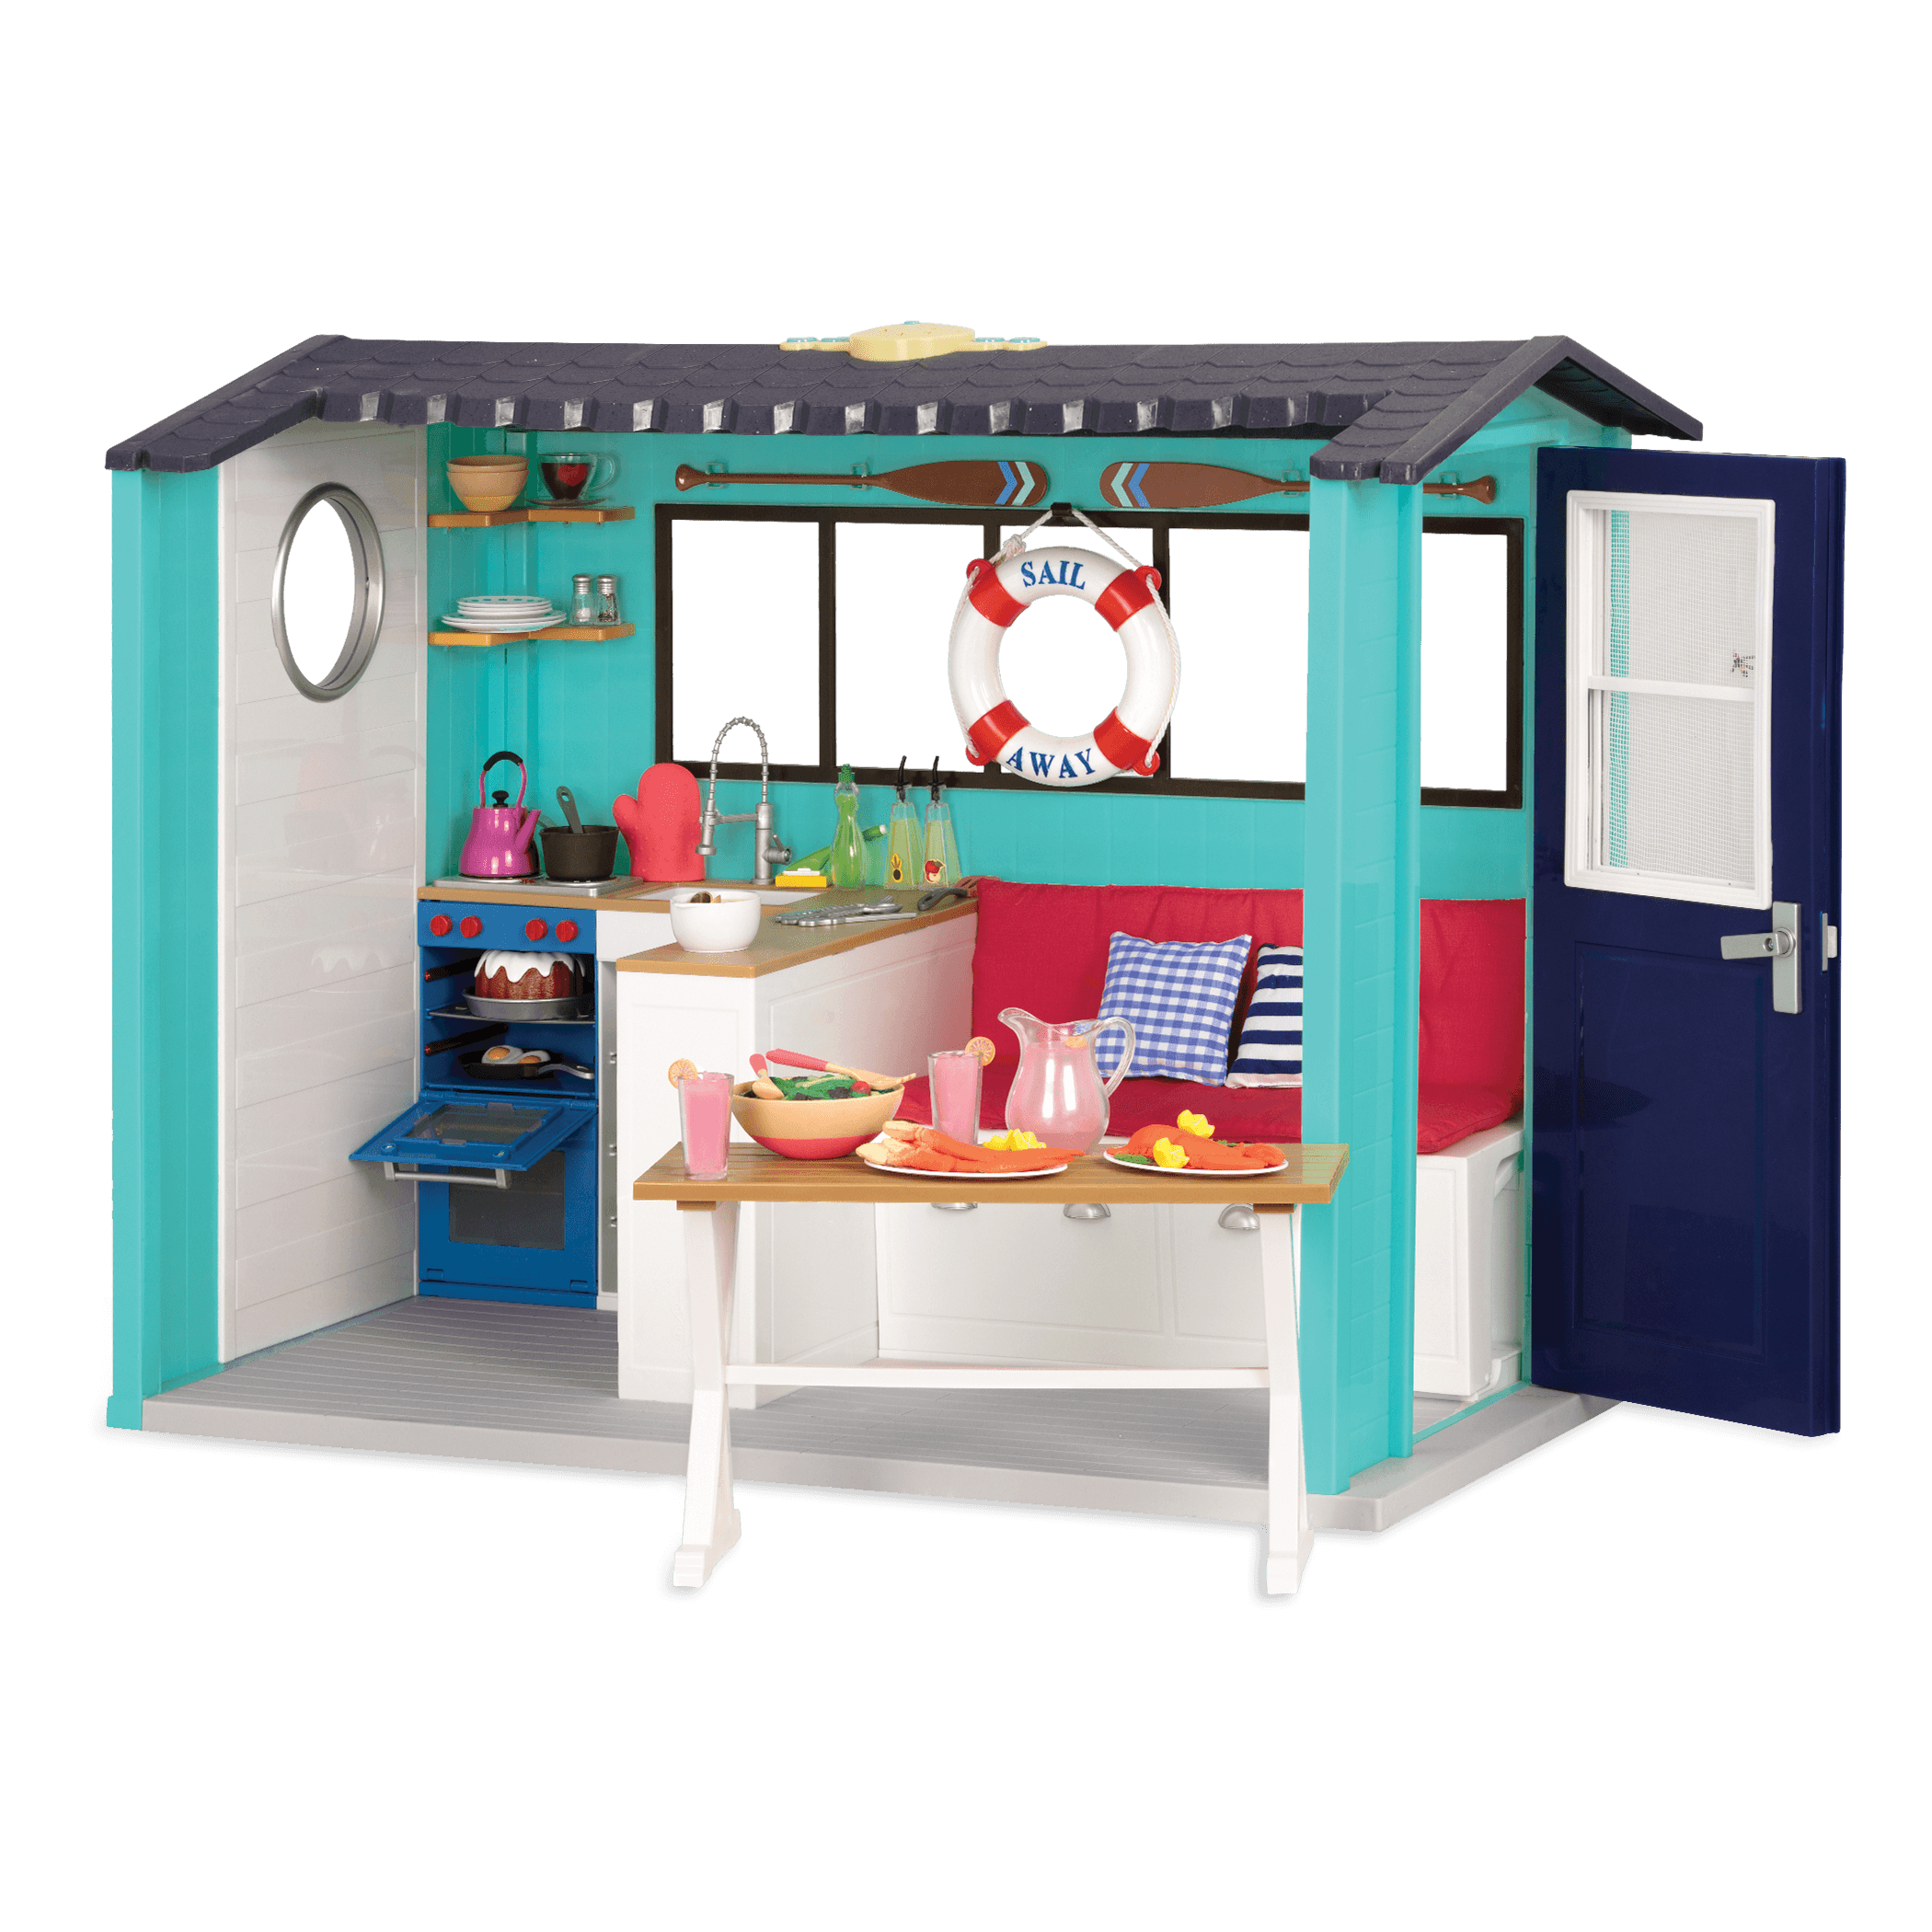 Seaside Beach House playset for 18-inch Dolls